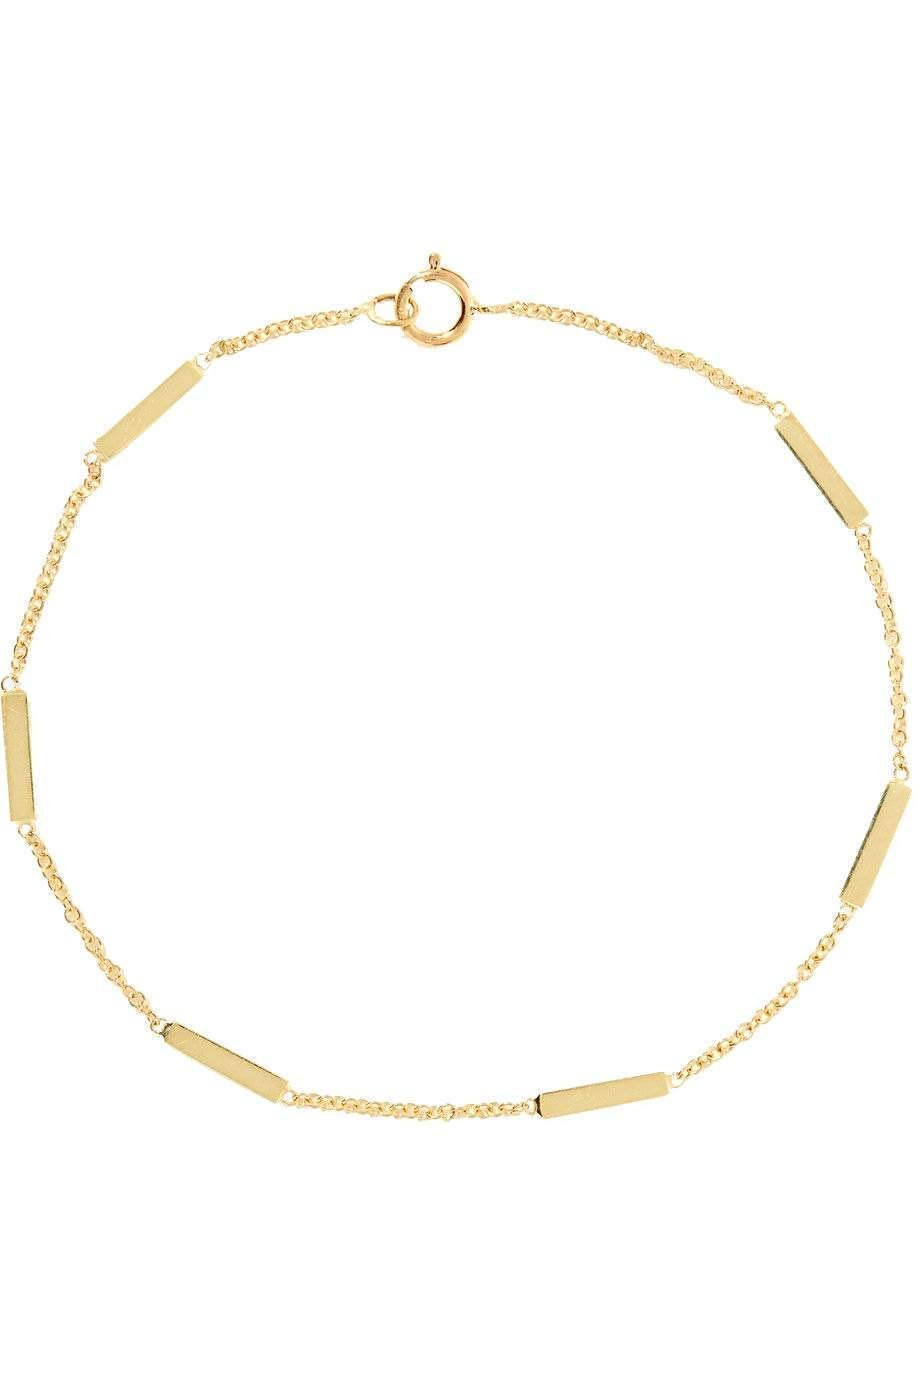 Real 14k Special price for a limited time Solid 1 year warranty Gold bracelet small bar Jewelry